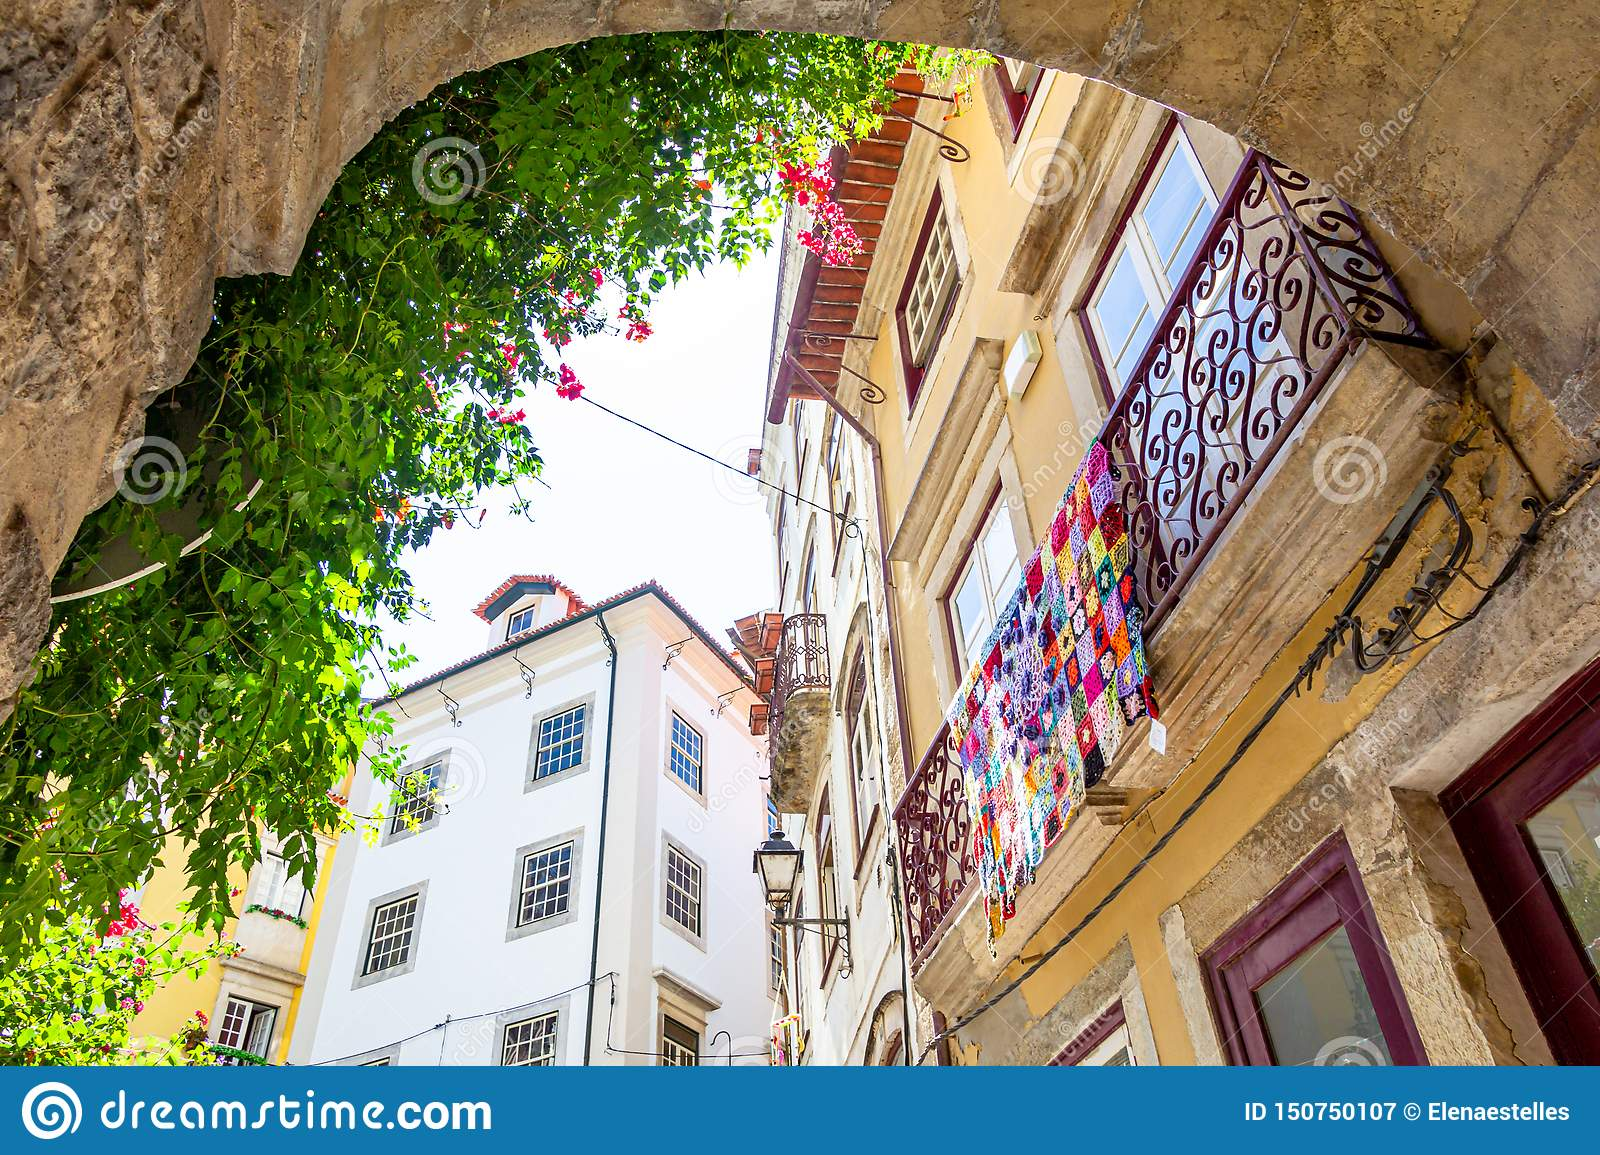 View on a balcony with colorful crochet blanket in Coimbra